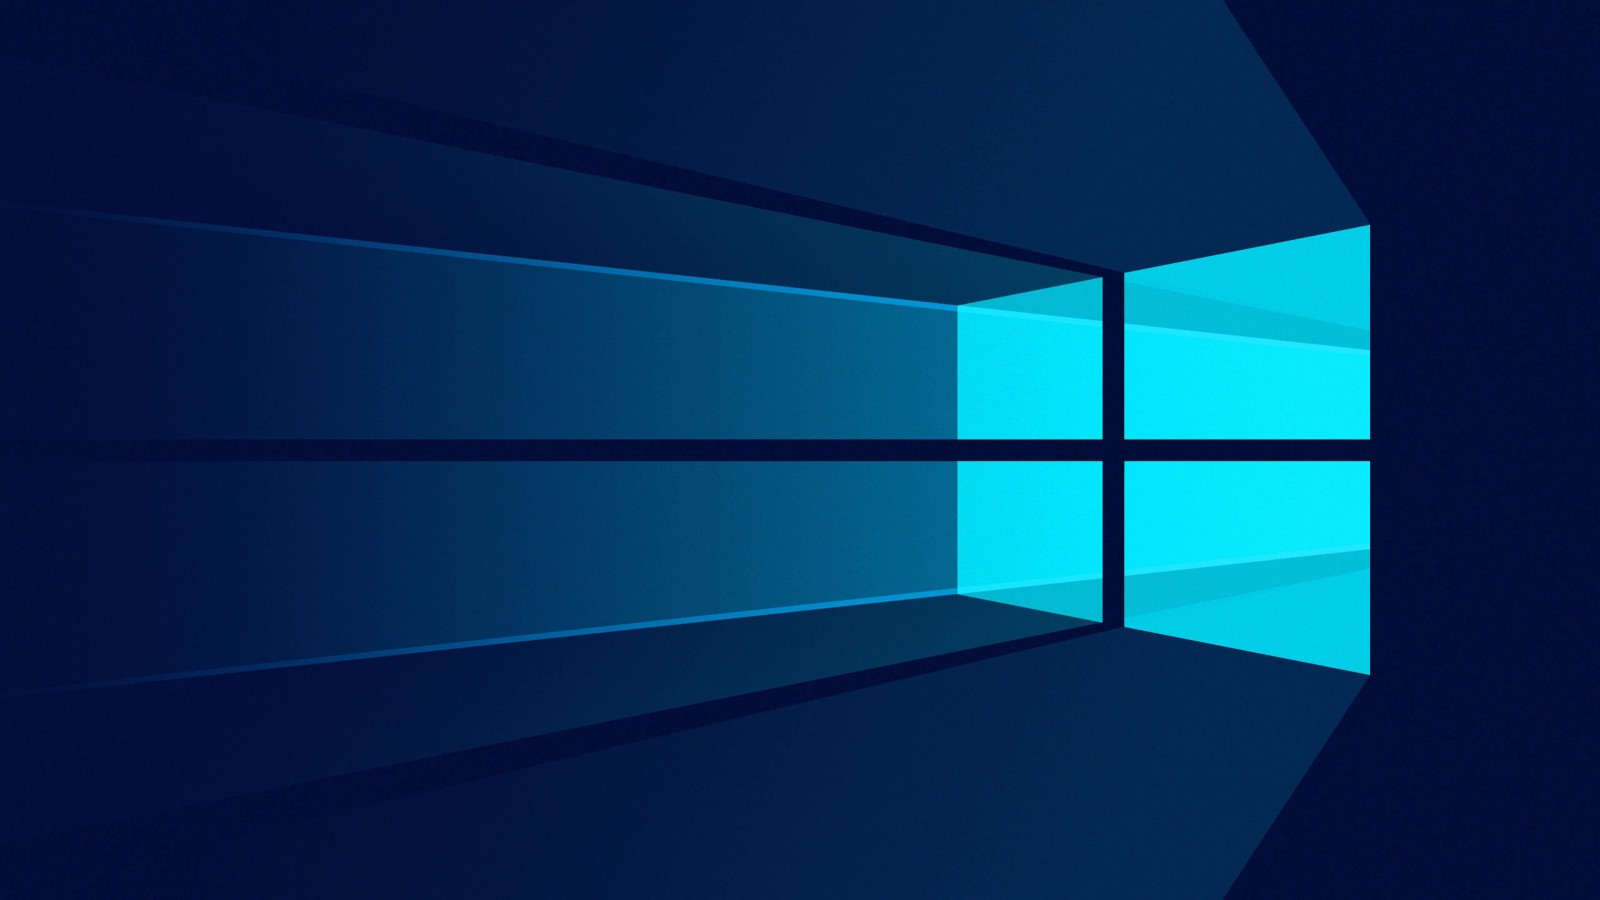 Windows 10 Flat Wallpaper for Desktop 1600x900